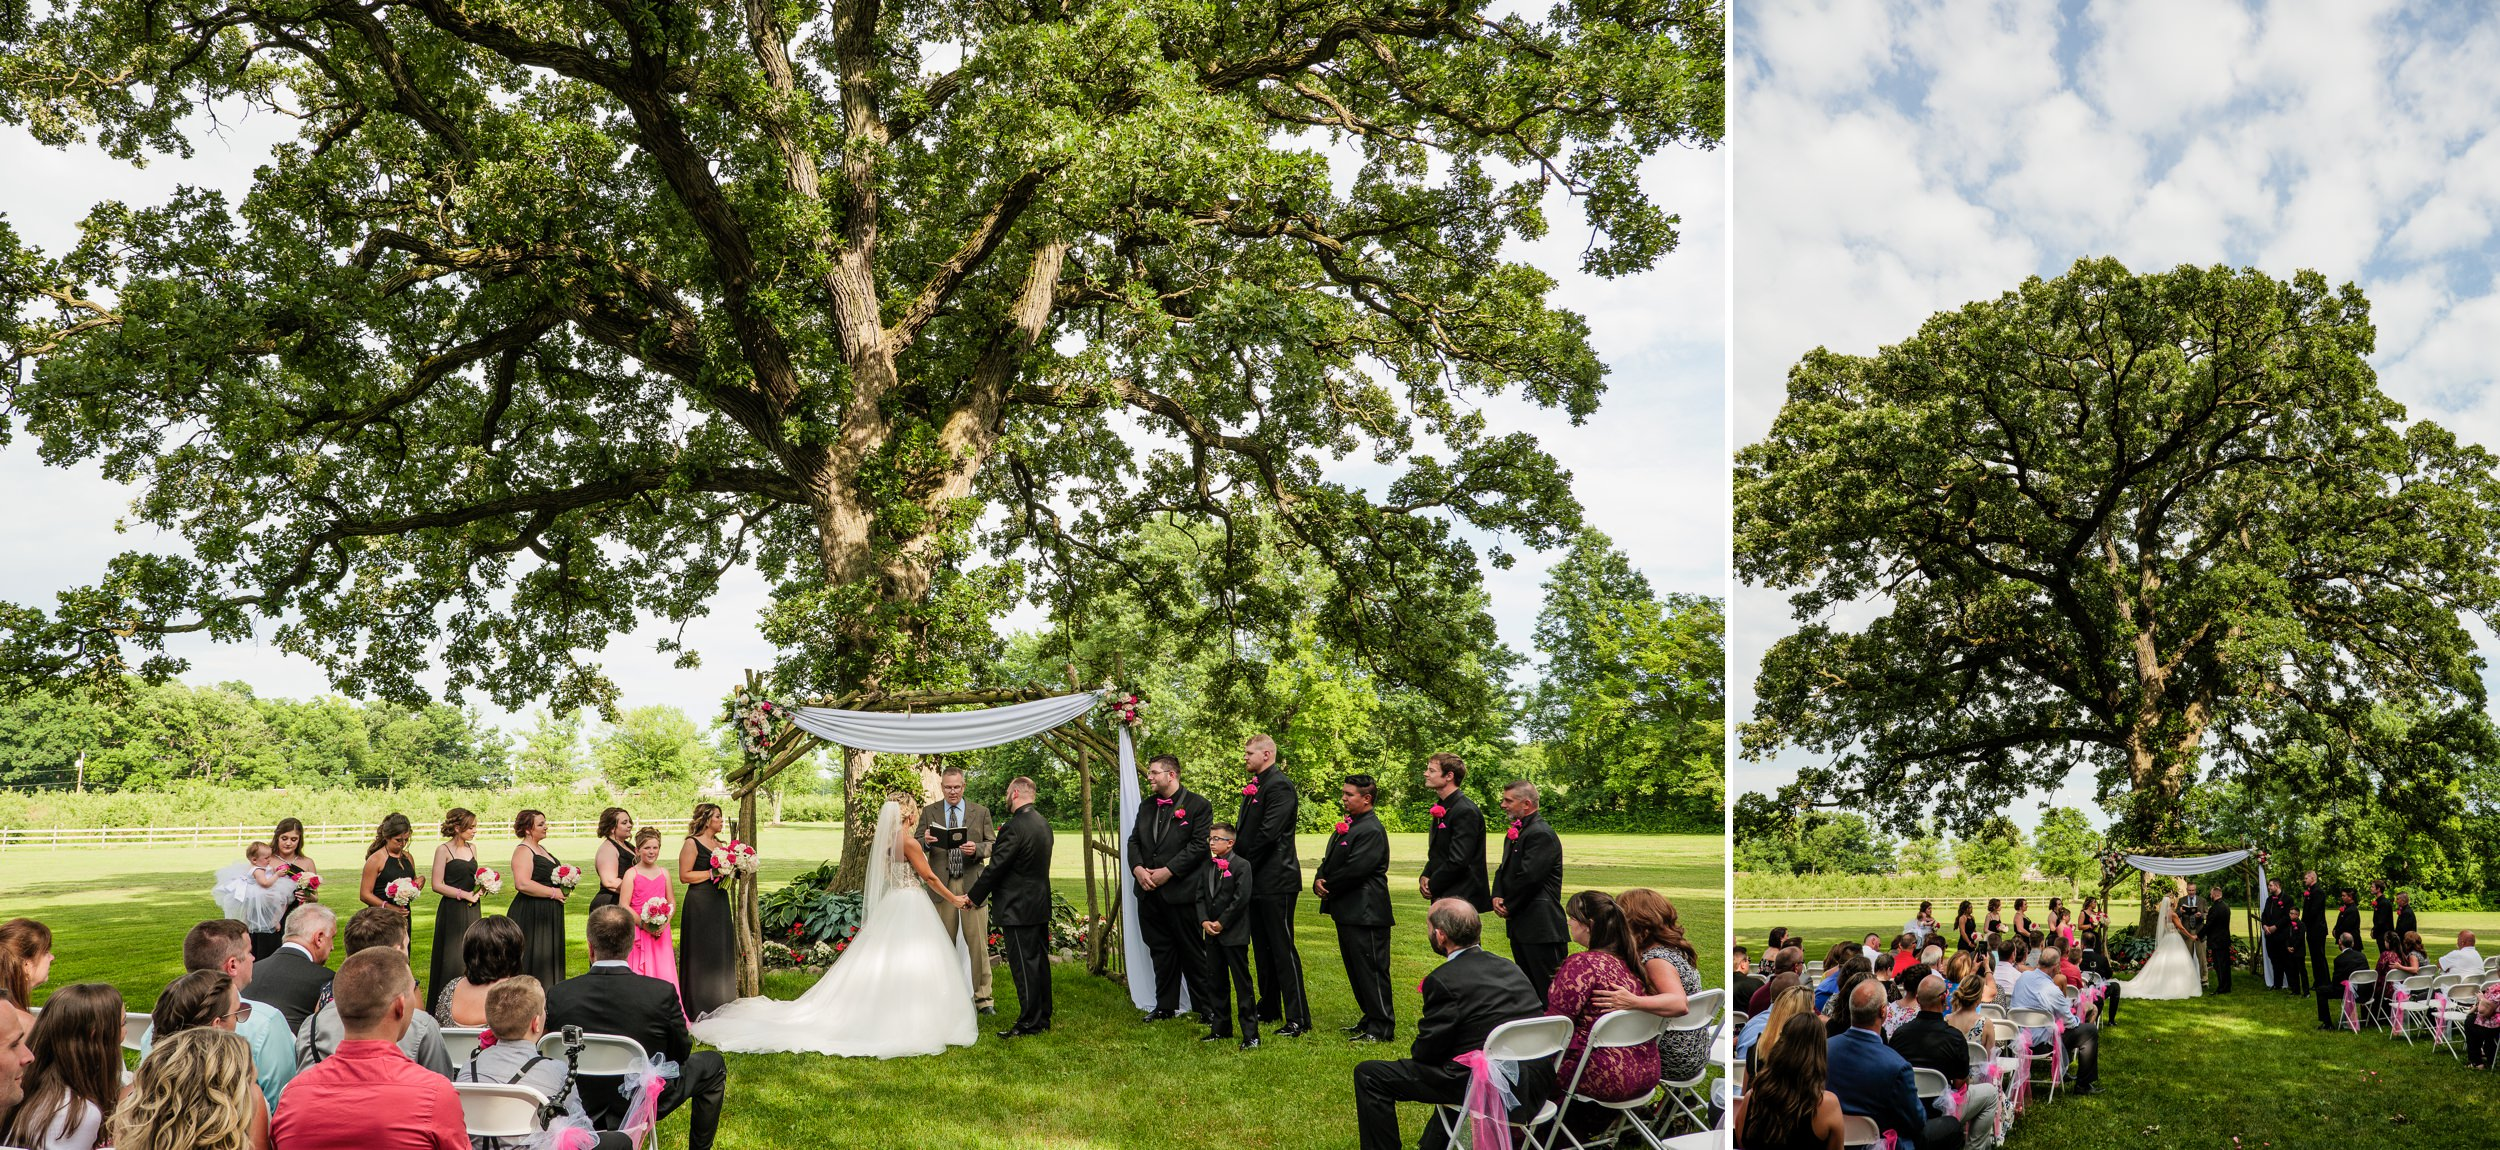 Wedding ceremony underneath the big oak tree at County Line Orchard.